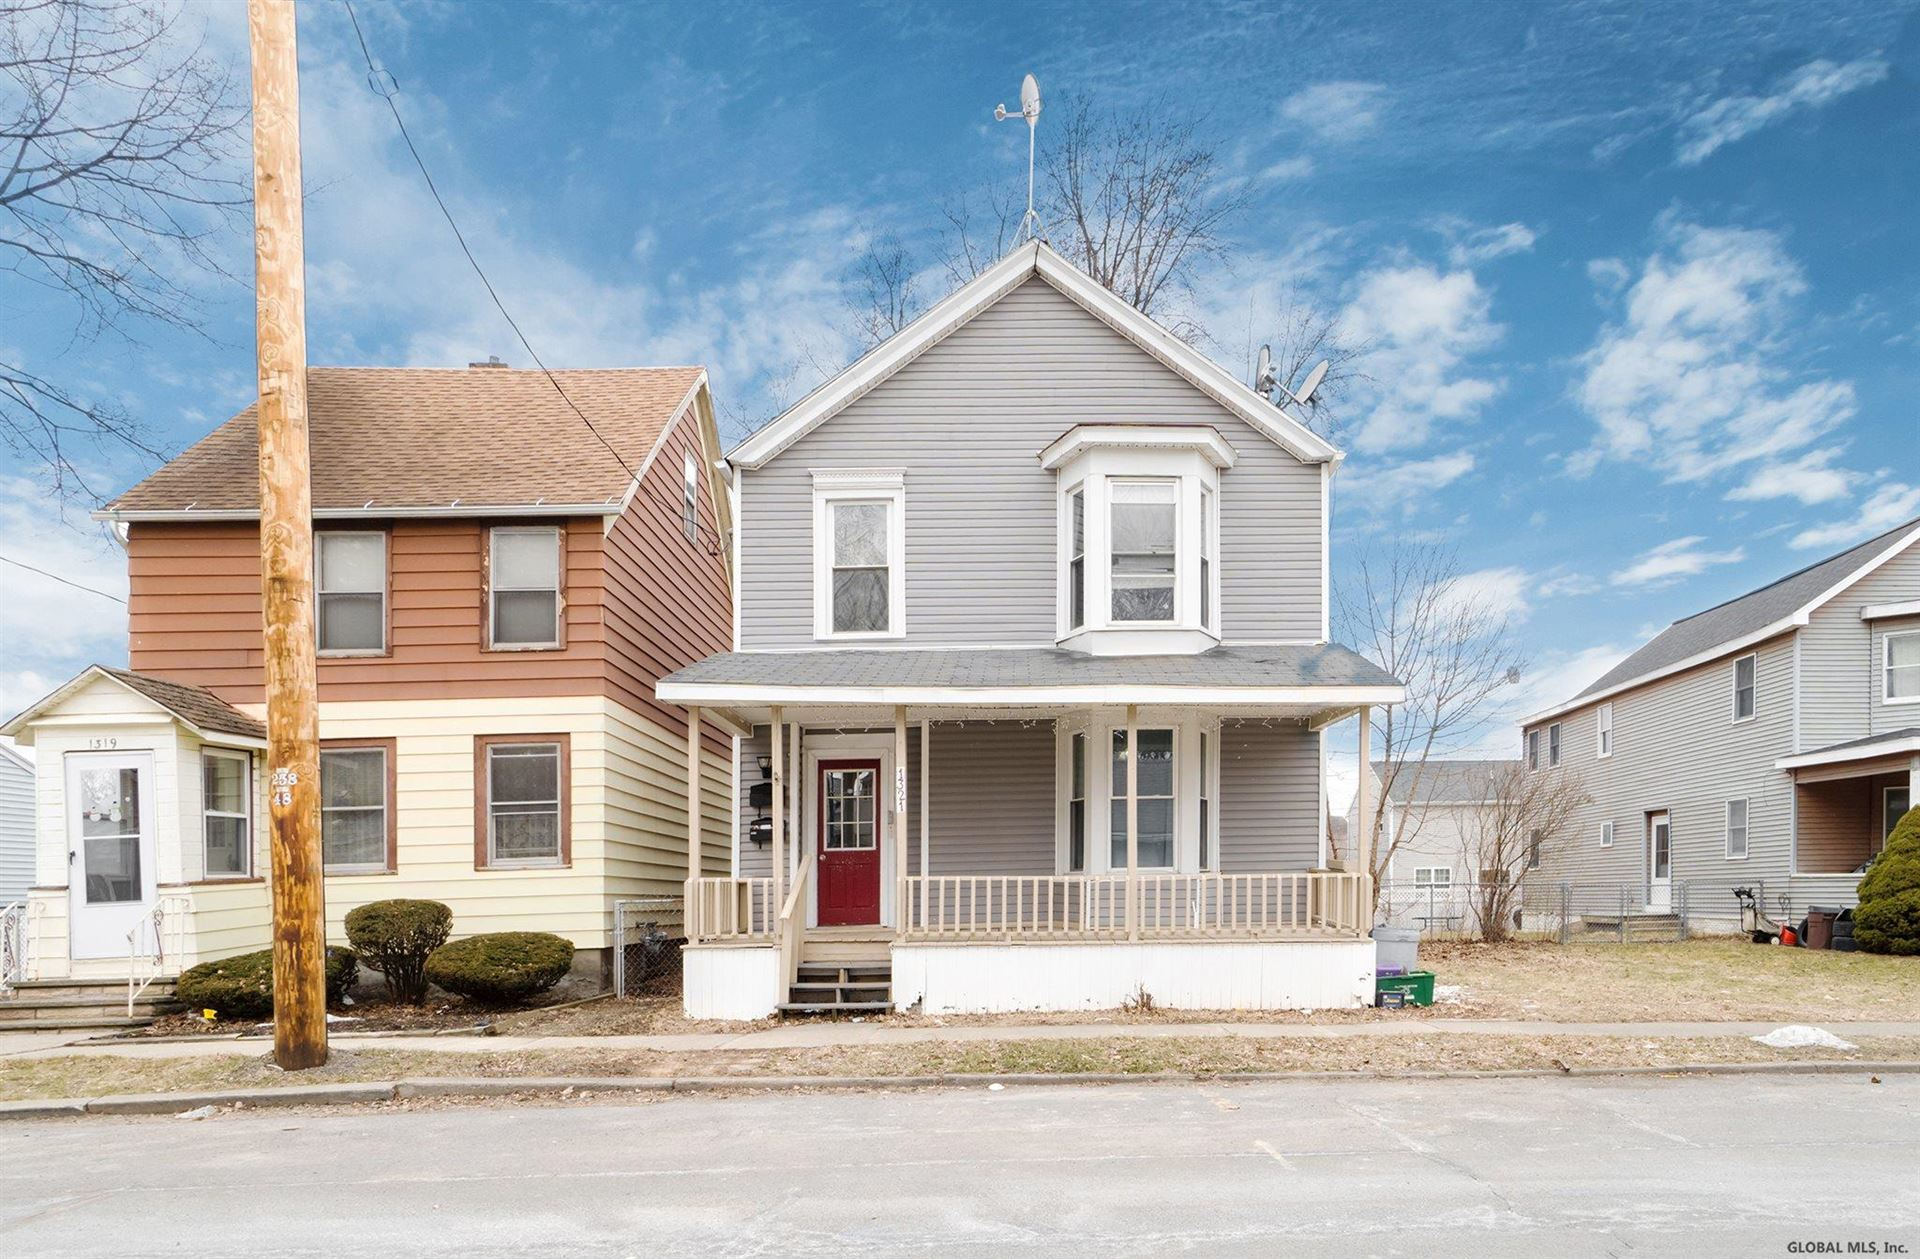 1321 8TH AV, Watervliet, NY 12189 - #: 202114121